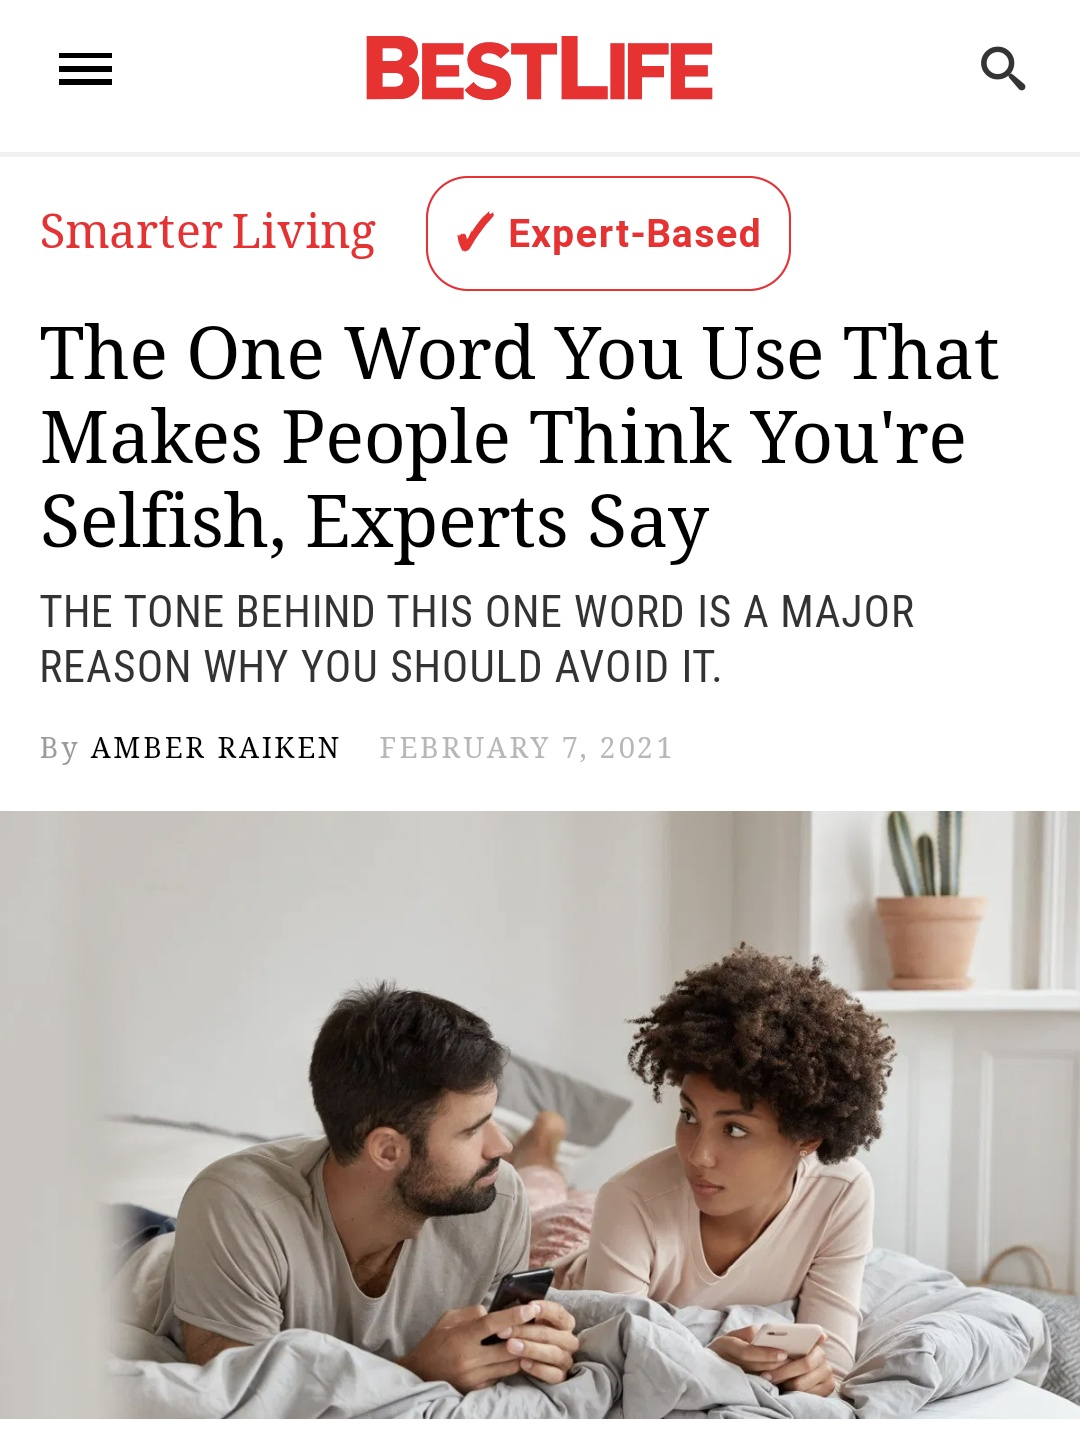 This One Word Makes People Think You're Selfish